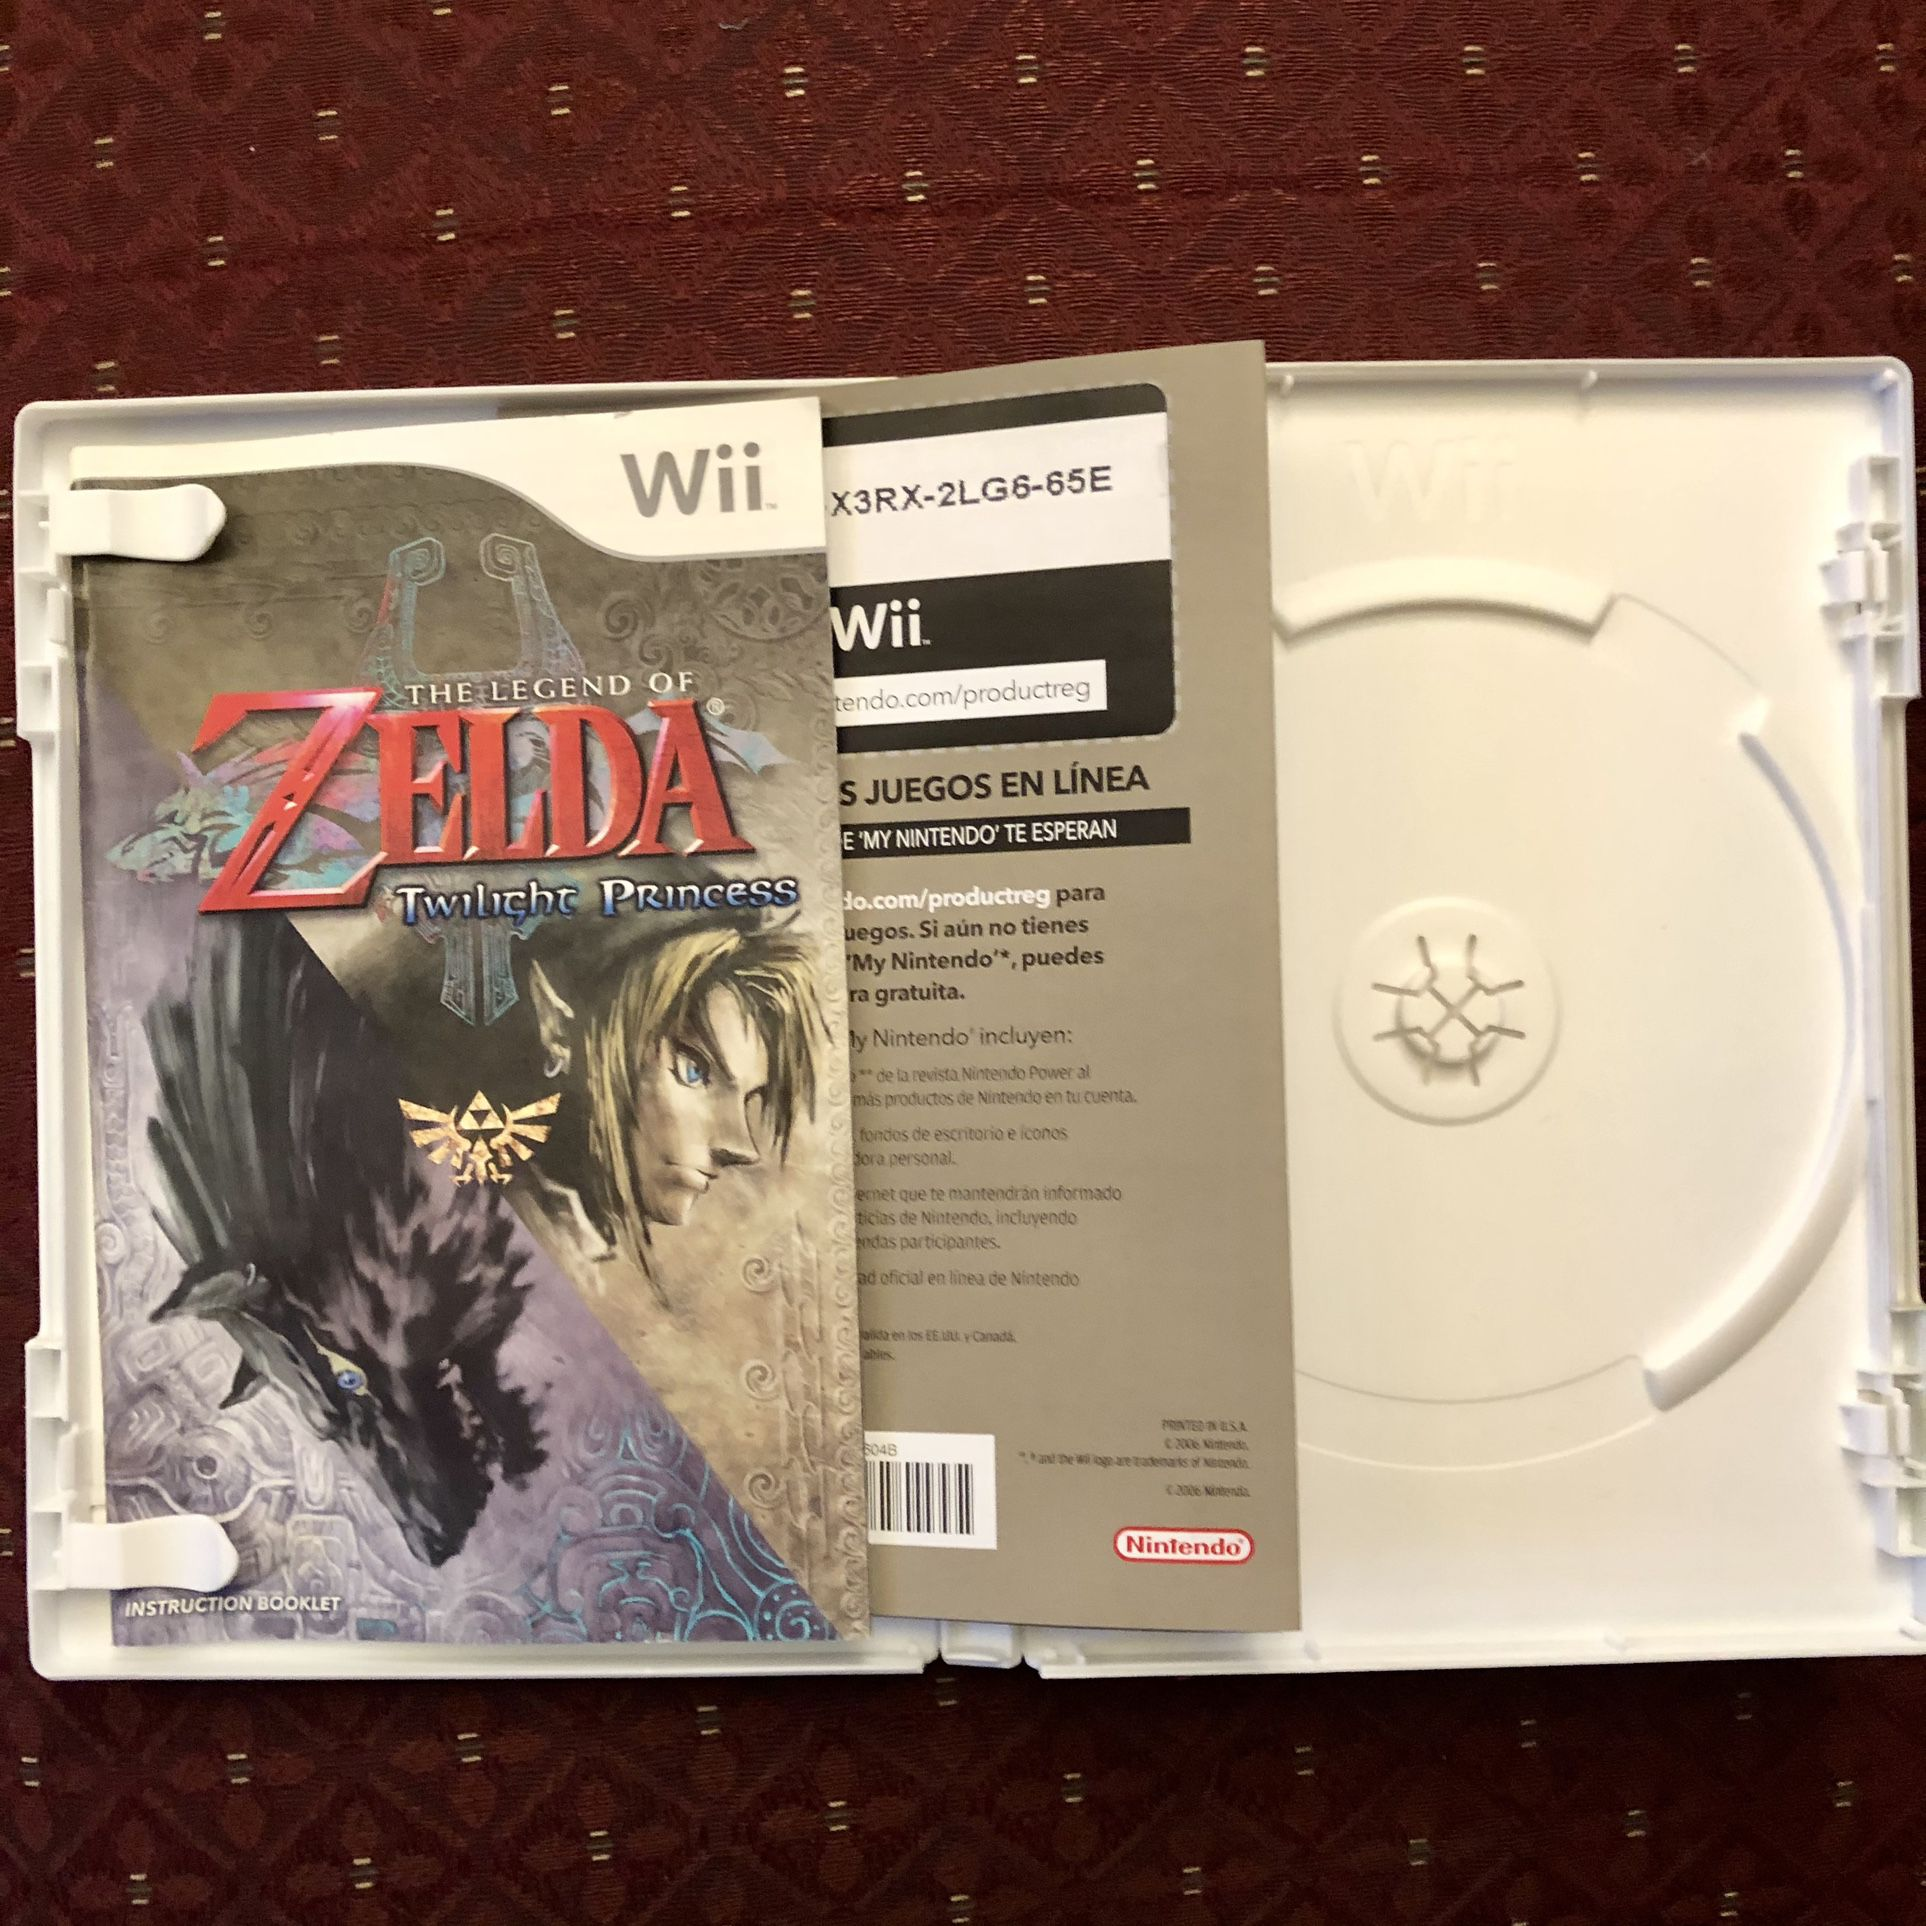 The Legend Of Zelda Twilight Princess Wii (Case And Manual Only)